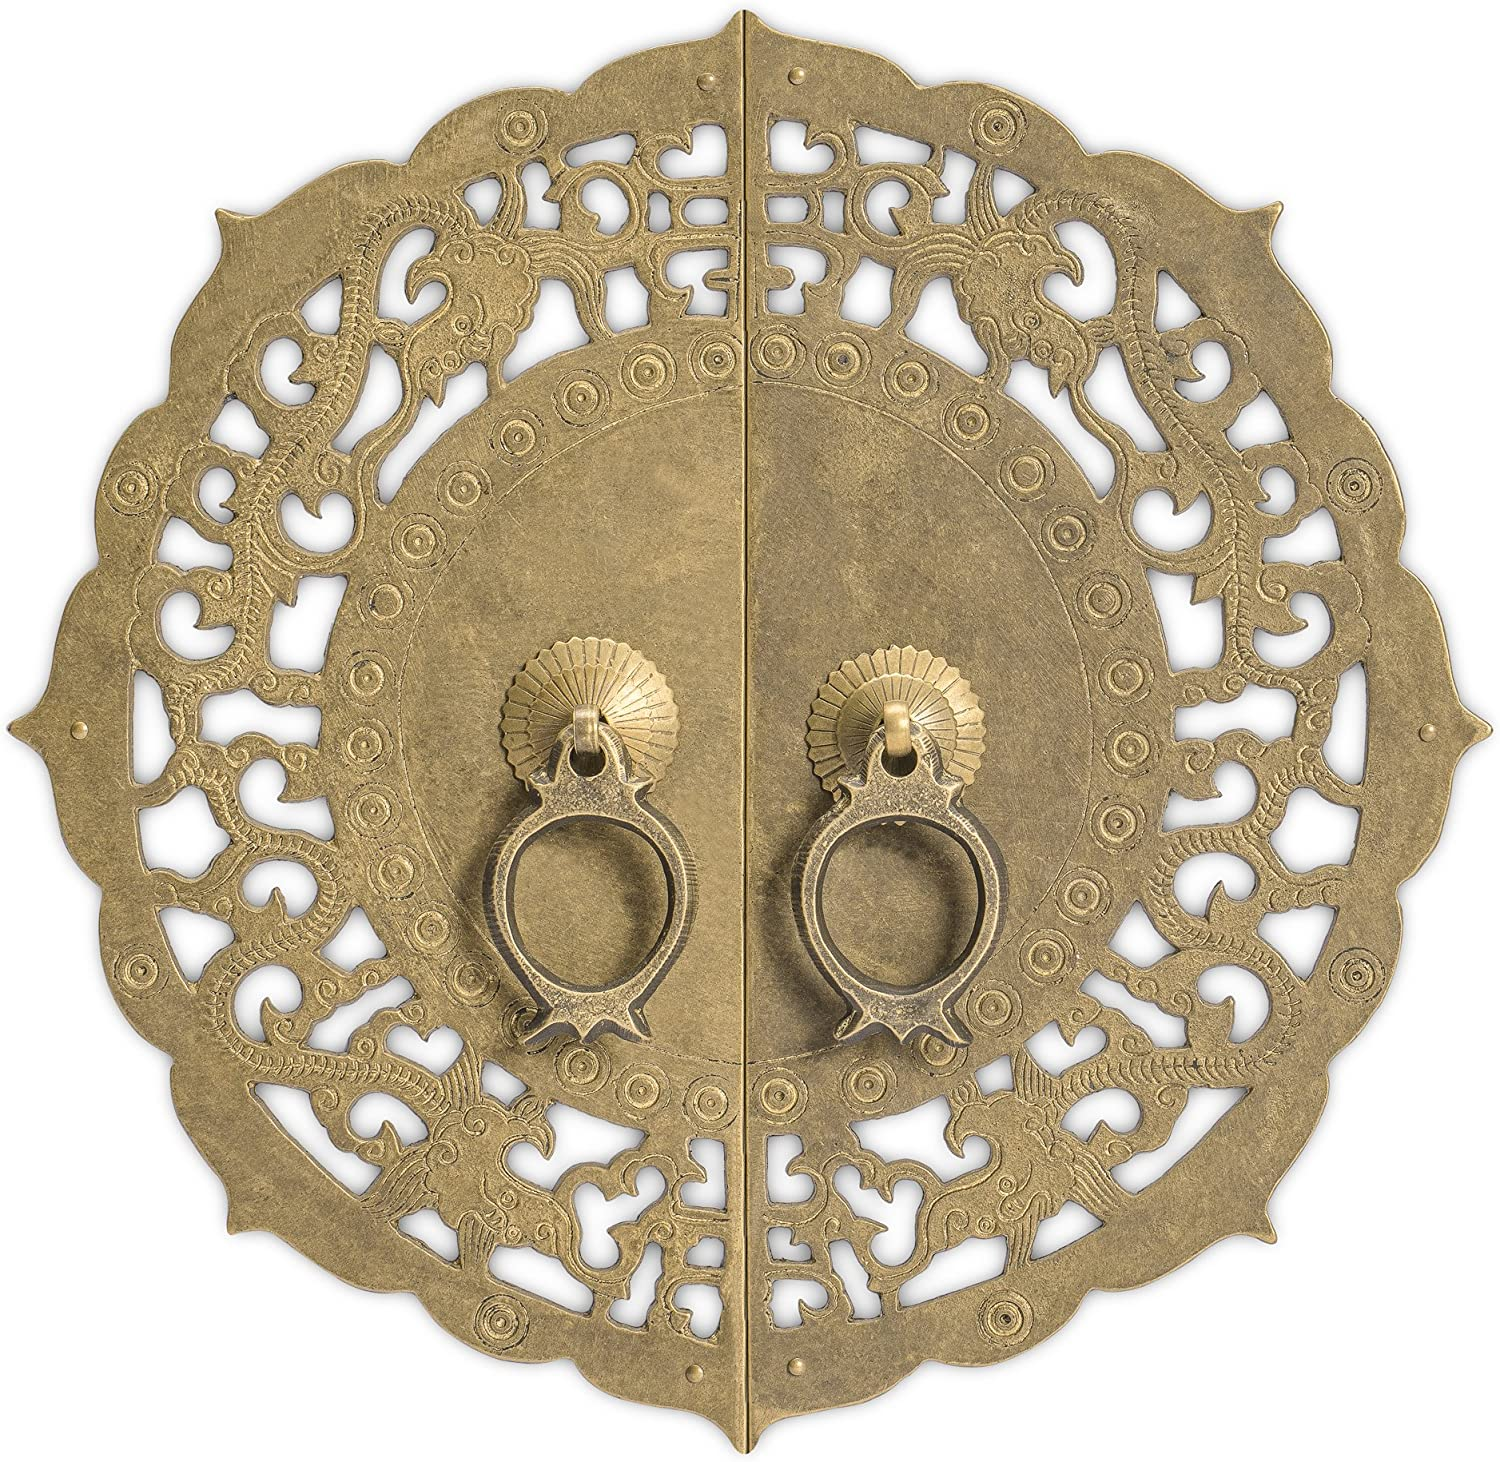 CBH Flowering Lotus Brass Cabinet Face Plate Backplate Hardware Set 9-7/8